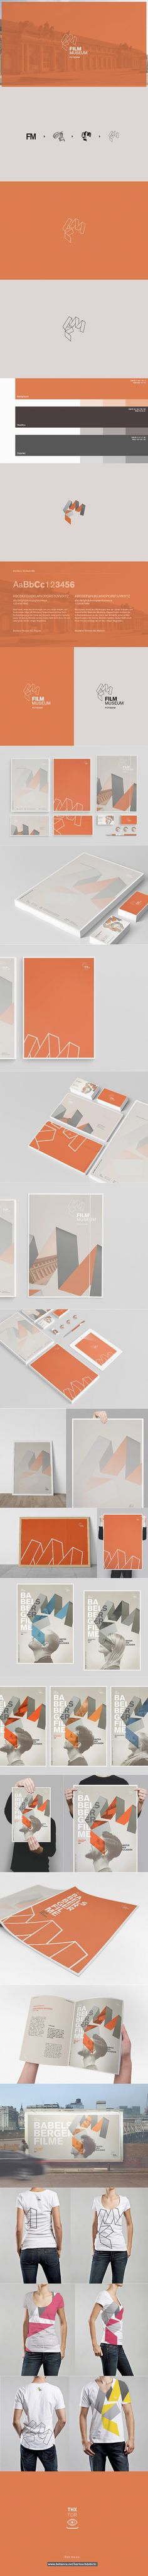 Design Conception of a Brand-Identity for the Film Museum in Potsdam. This work is part of a semester project.  More Projects on: http://www.behance.net/bartoschdebicki